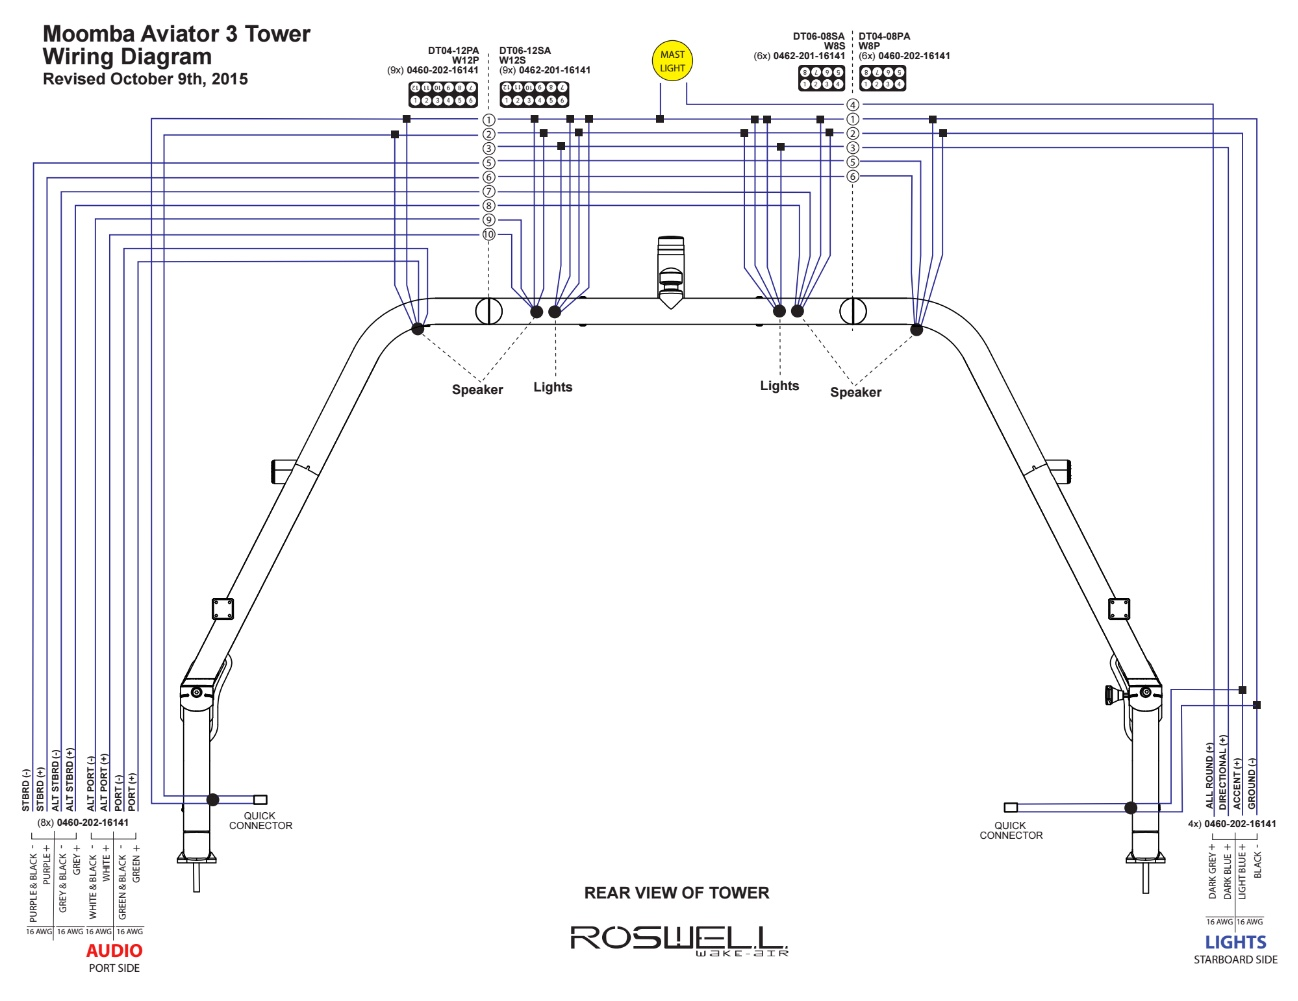 wet sounds eq wiring diagram wiring library wet sounds eq wiring diagram